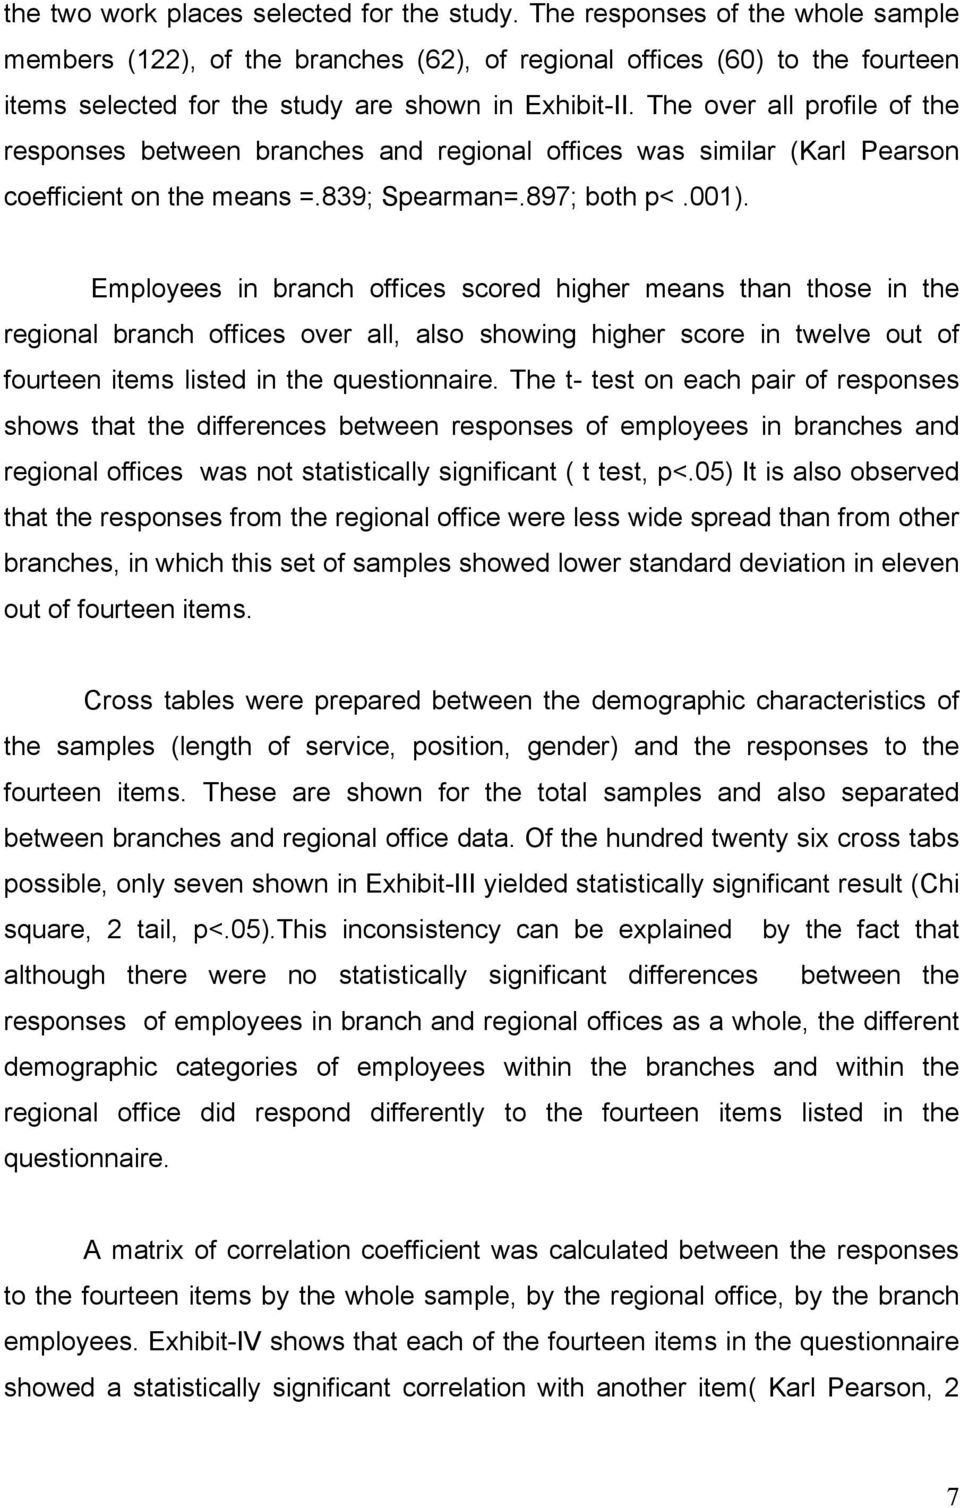 The over all profile of the responses between branches and regional offices was similar (Karl Pearson coefficient on the means =.839; Spearman=.897; both p<.001).